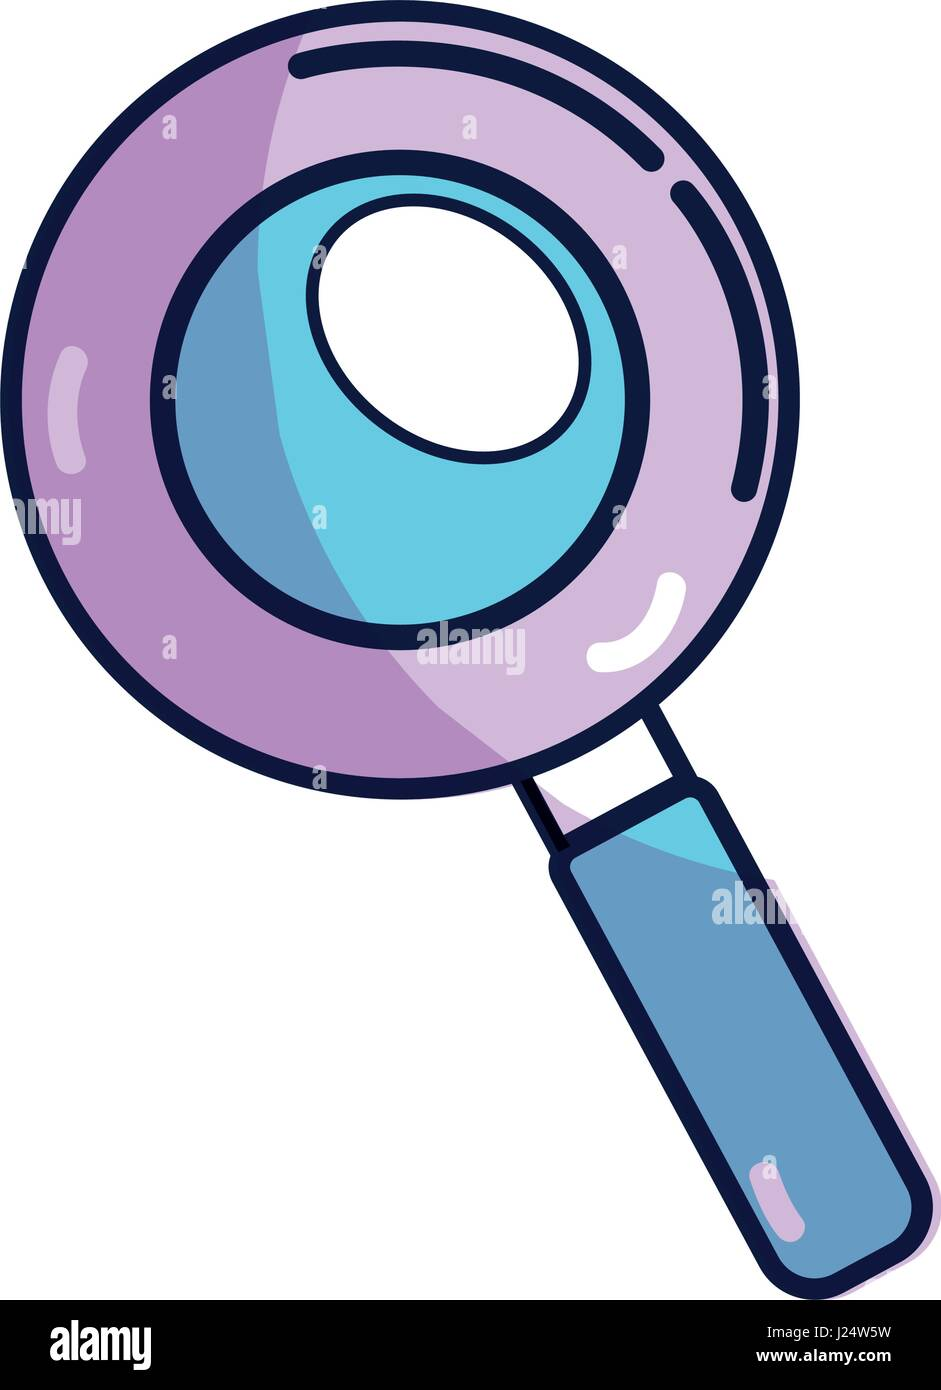 magnifying optical search tool - Stock Vector